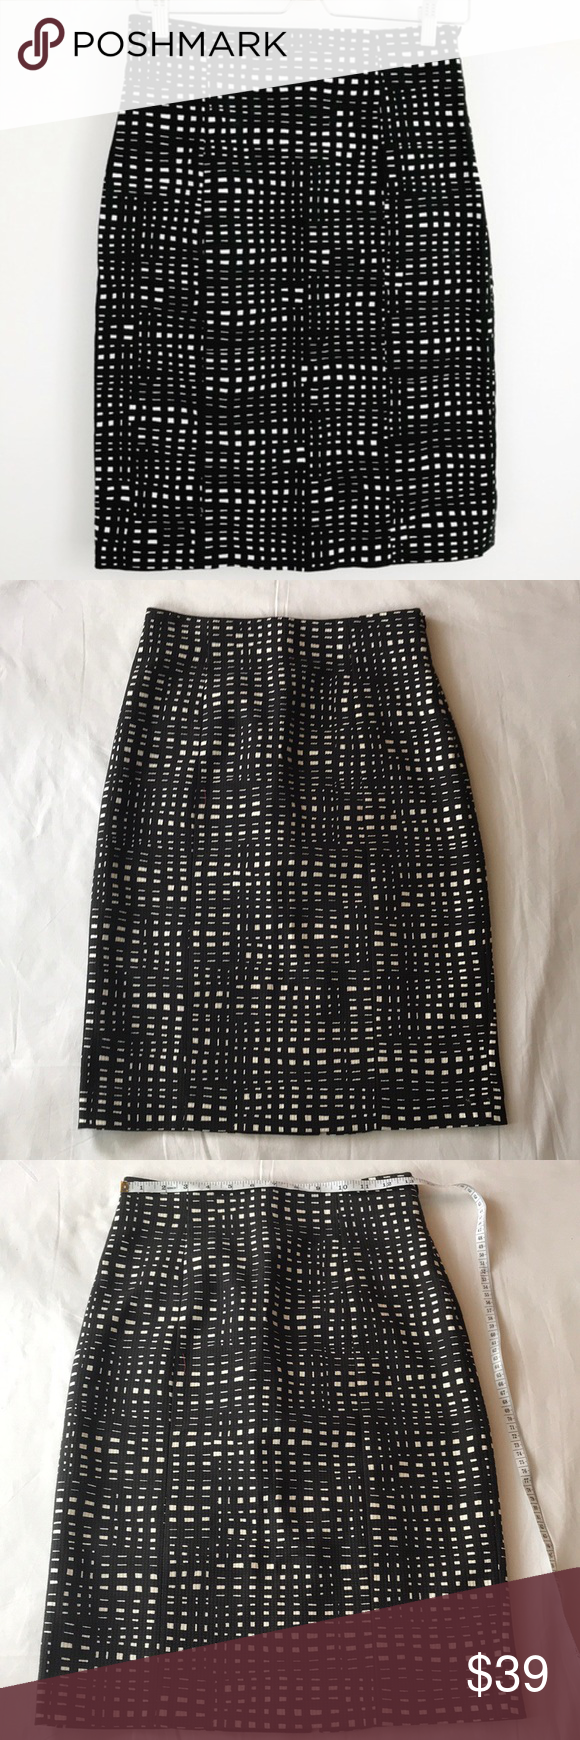 3a1abd3c76 Theory black & white square checkered pencil skirt Theory. Black and white  square checkered pencil skirt with slit in the back. Size 2.